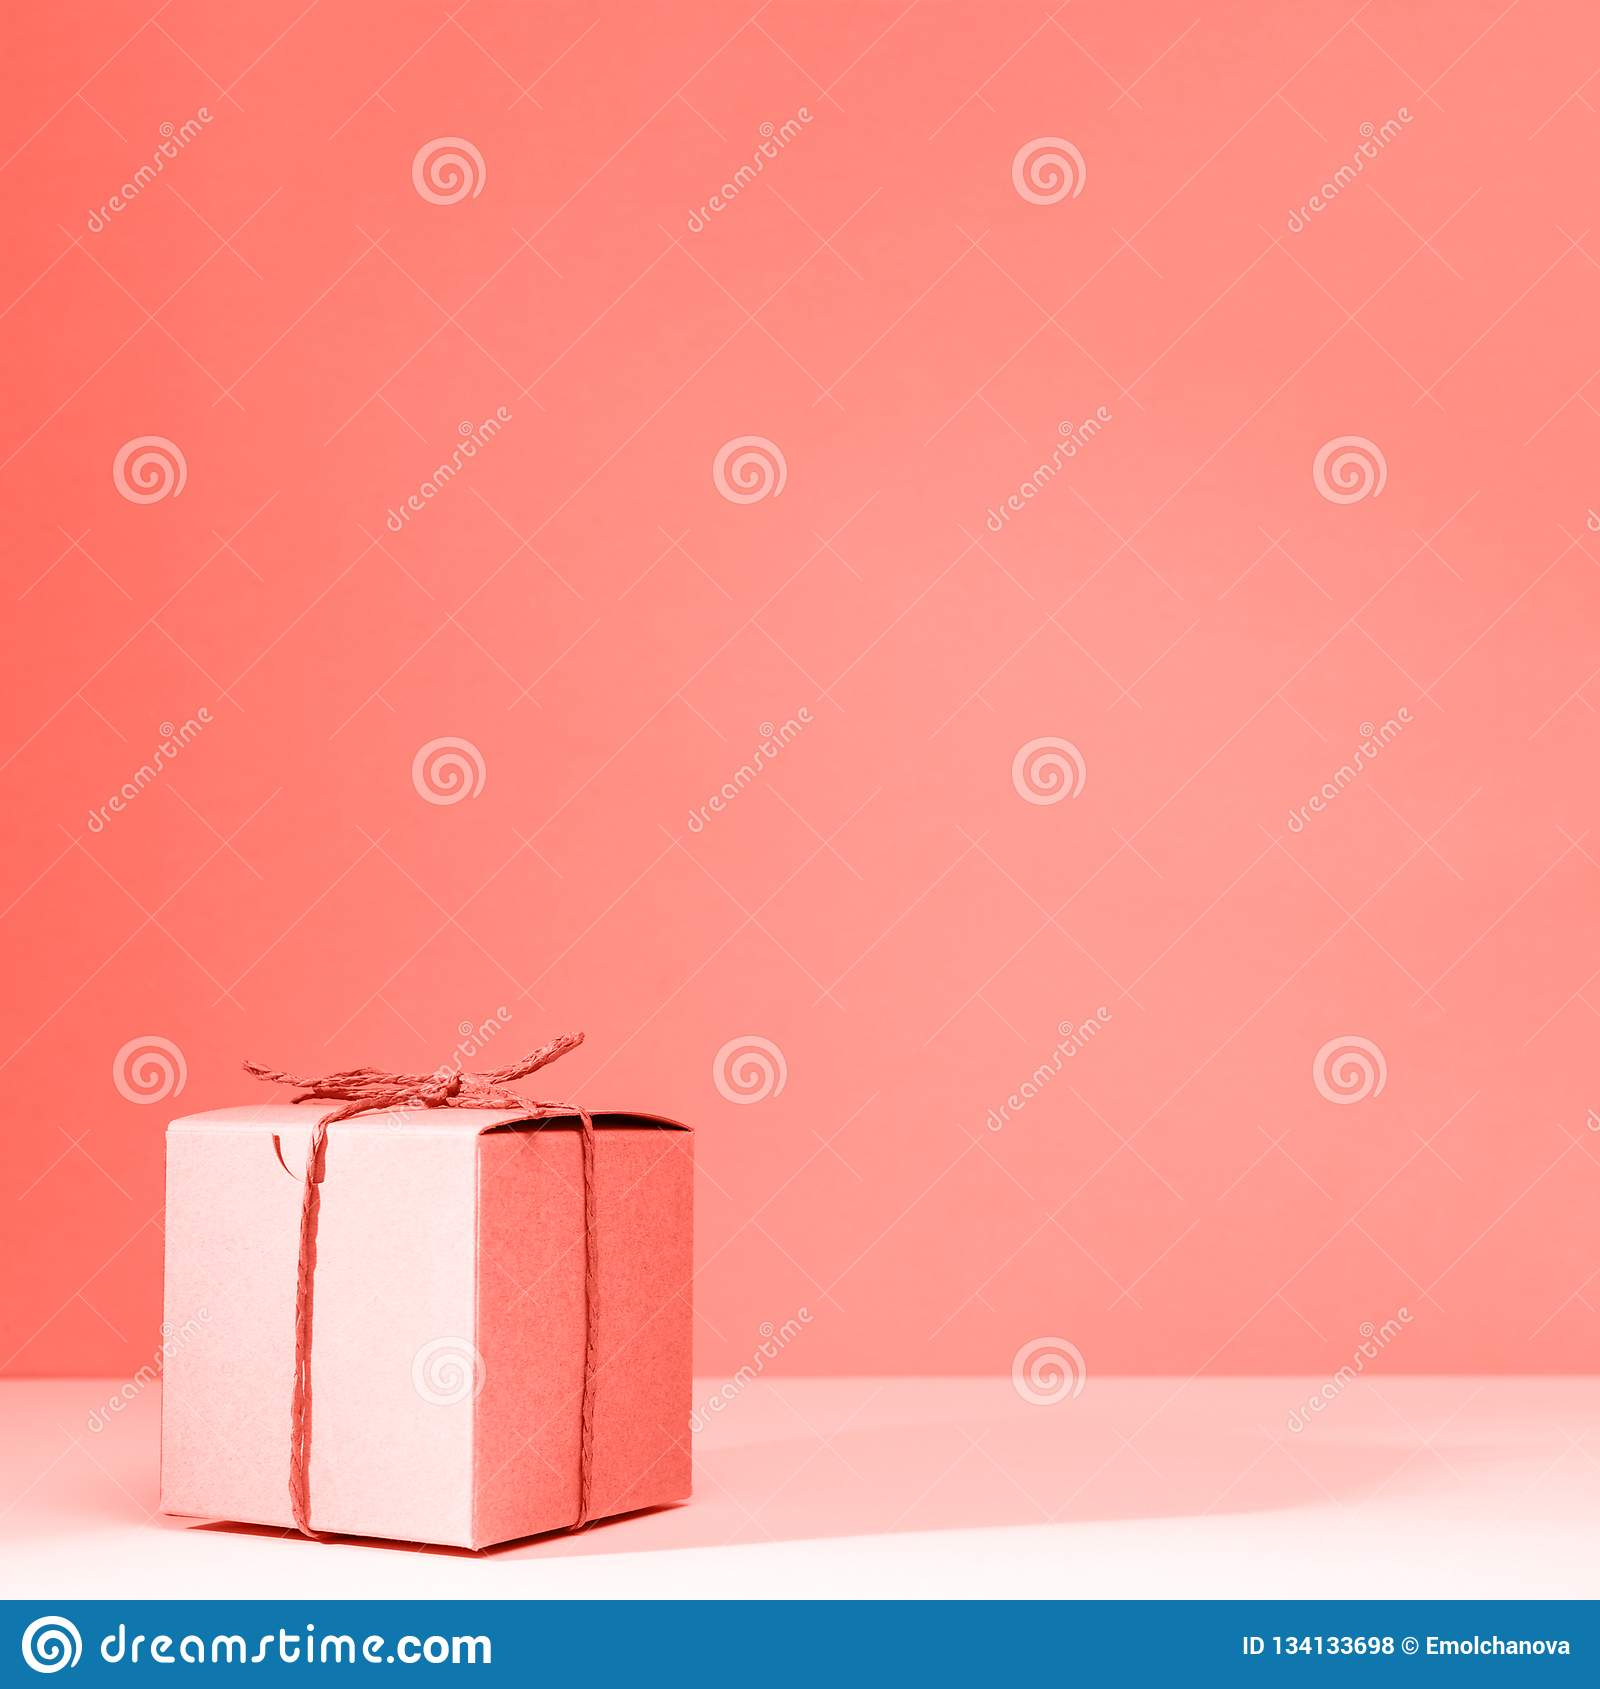 Craft Cardboard Gift Box On The Solid Pink Background Holiday And